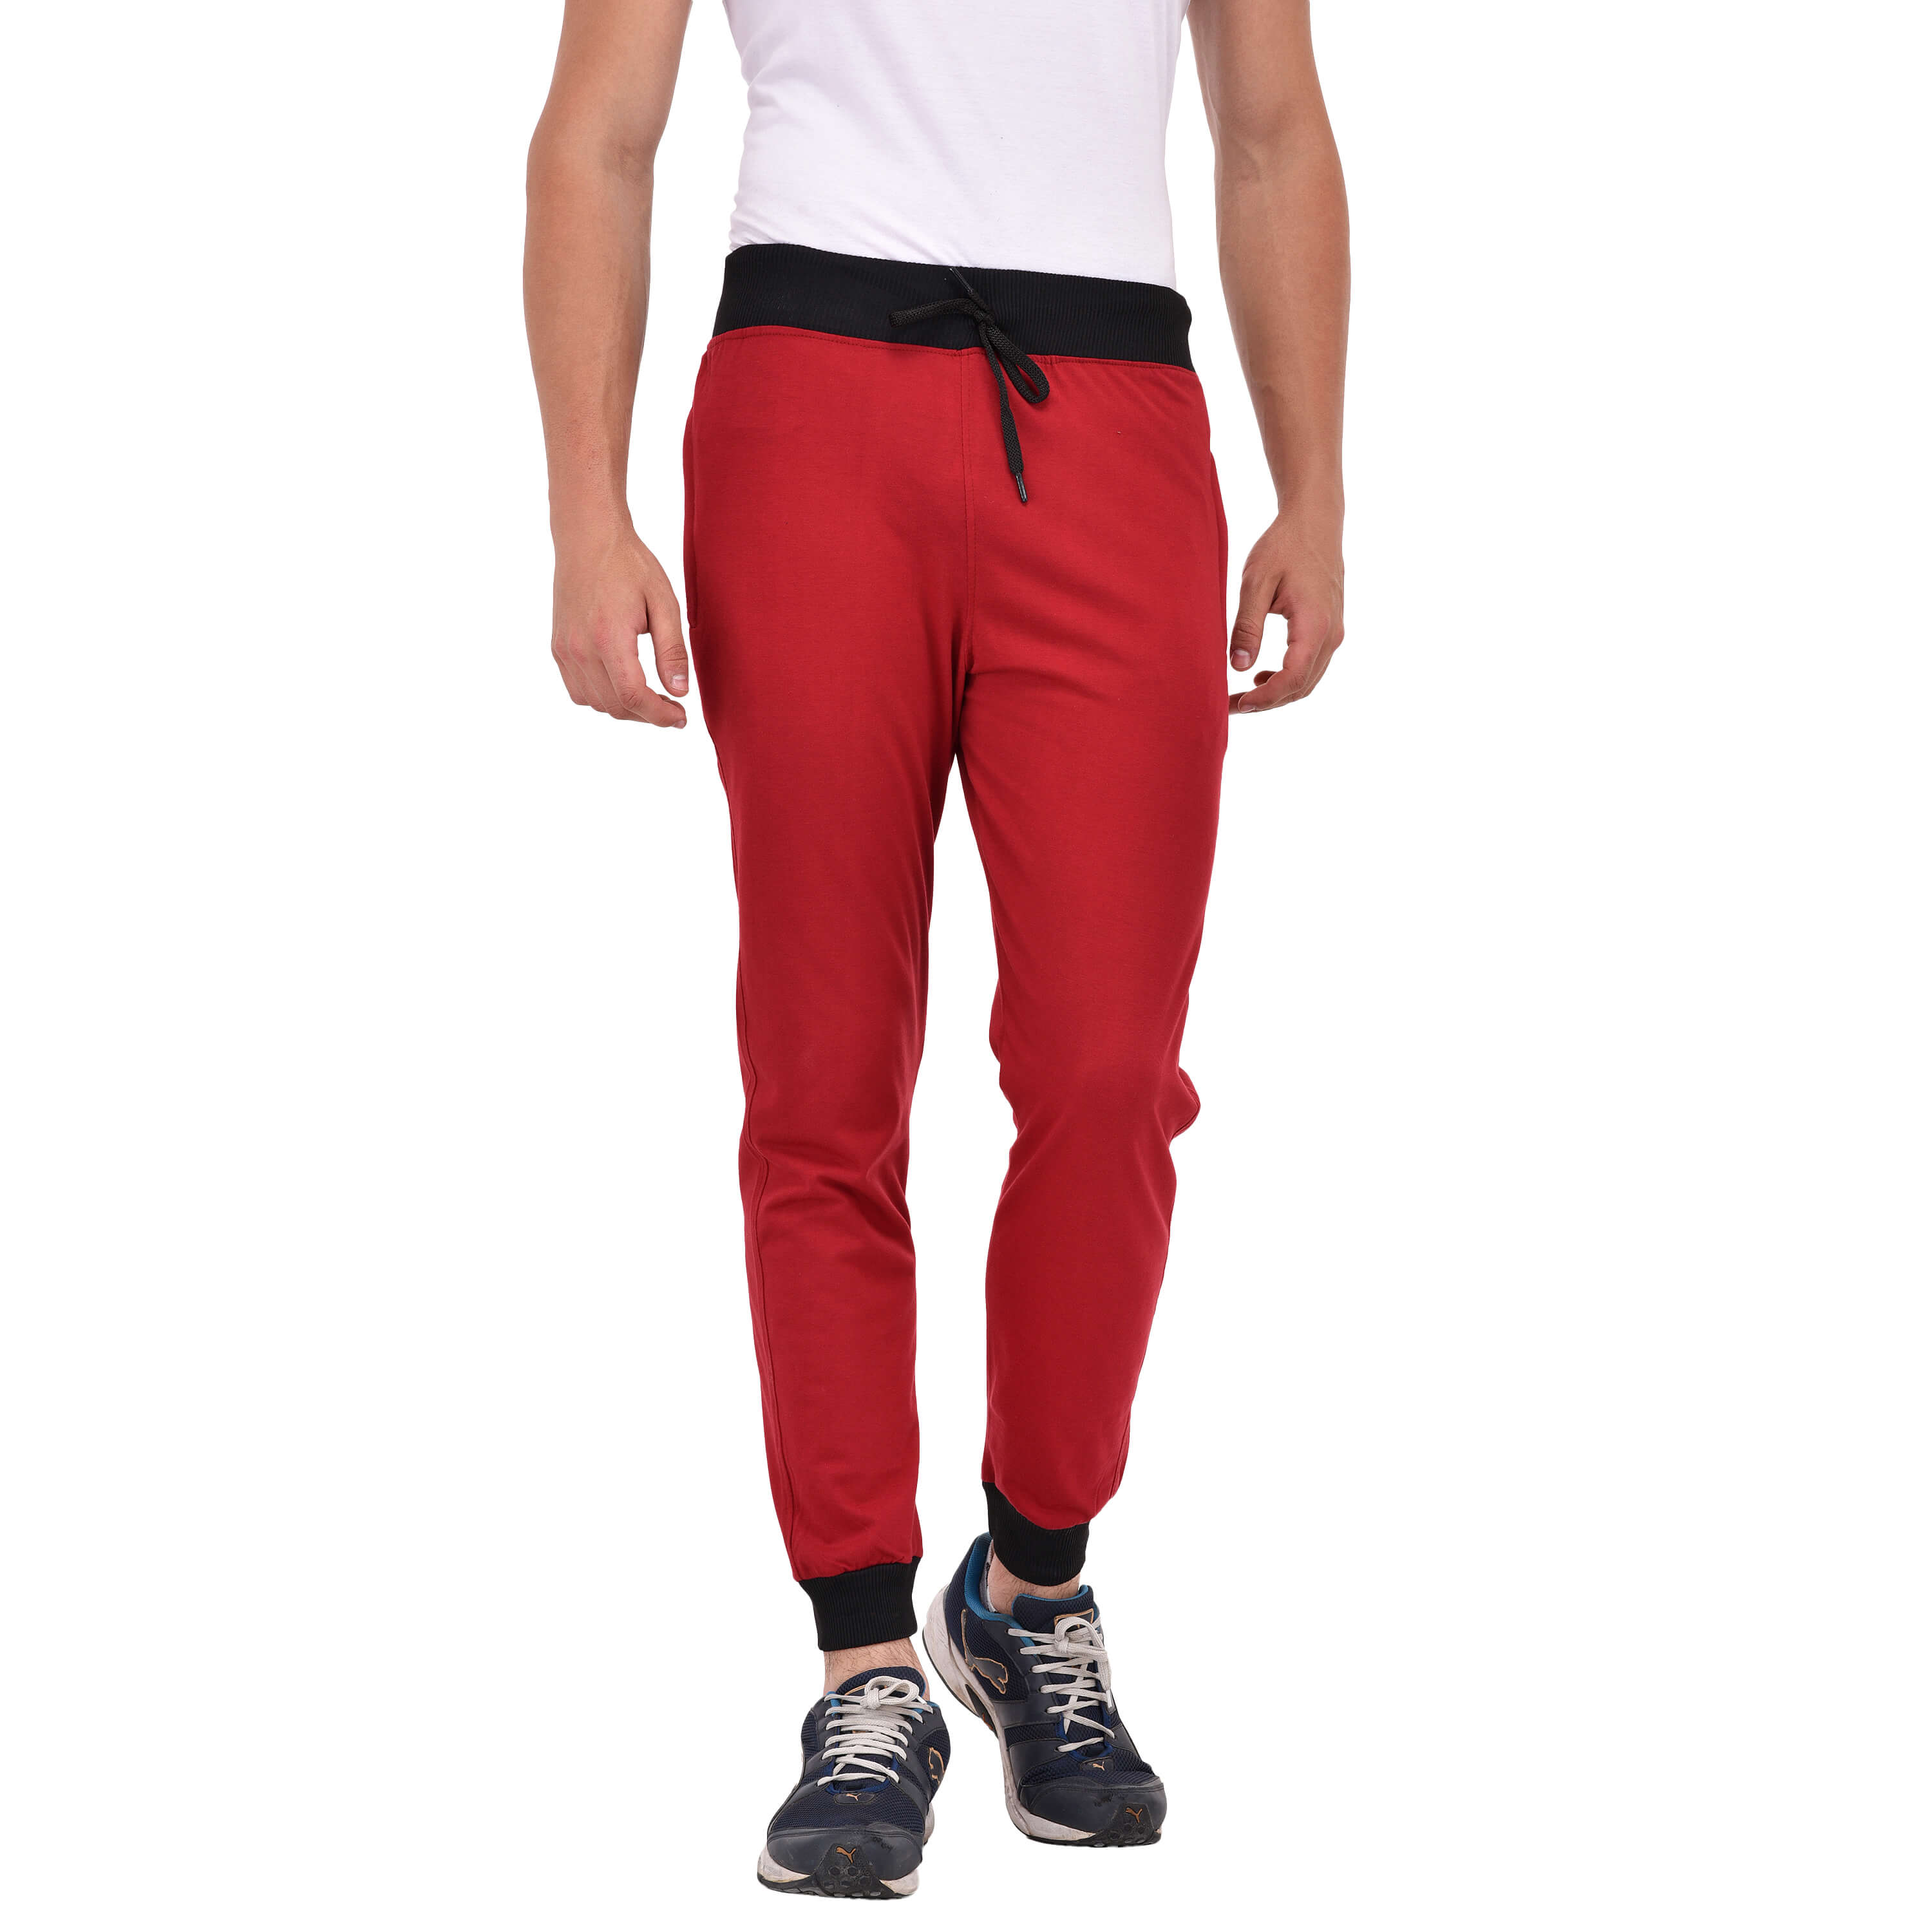 Mens Cricket Trousers Manufacturers, Wholesale Suppliers